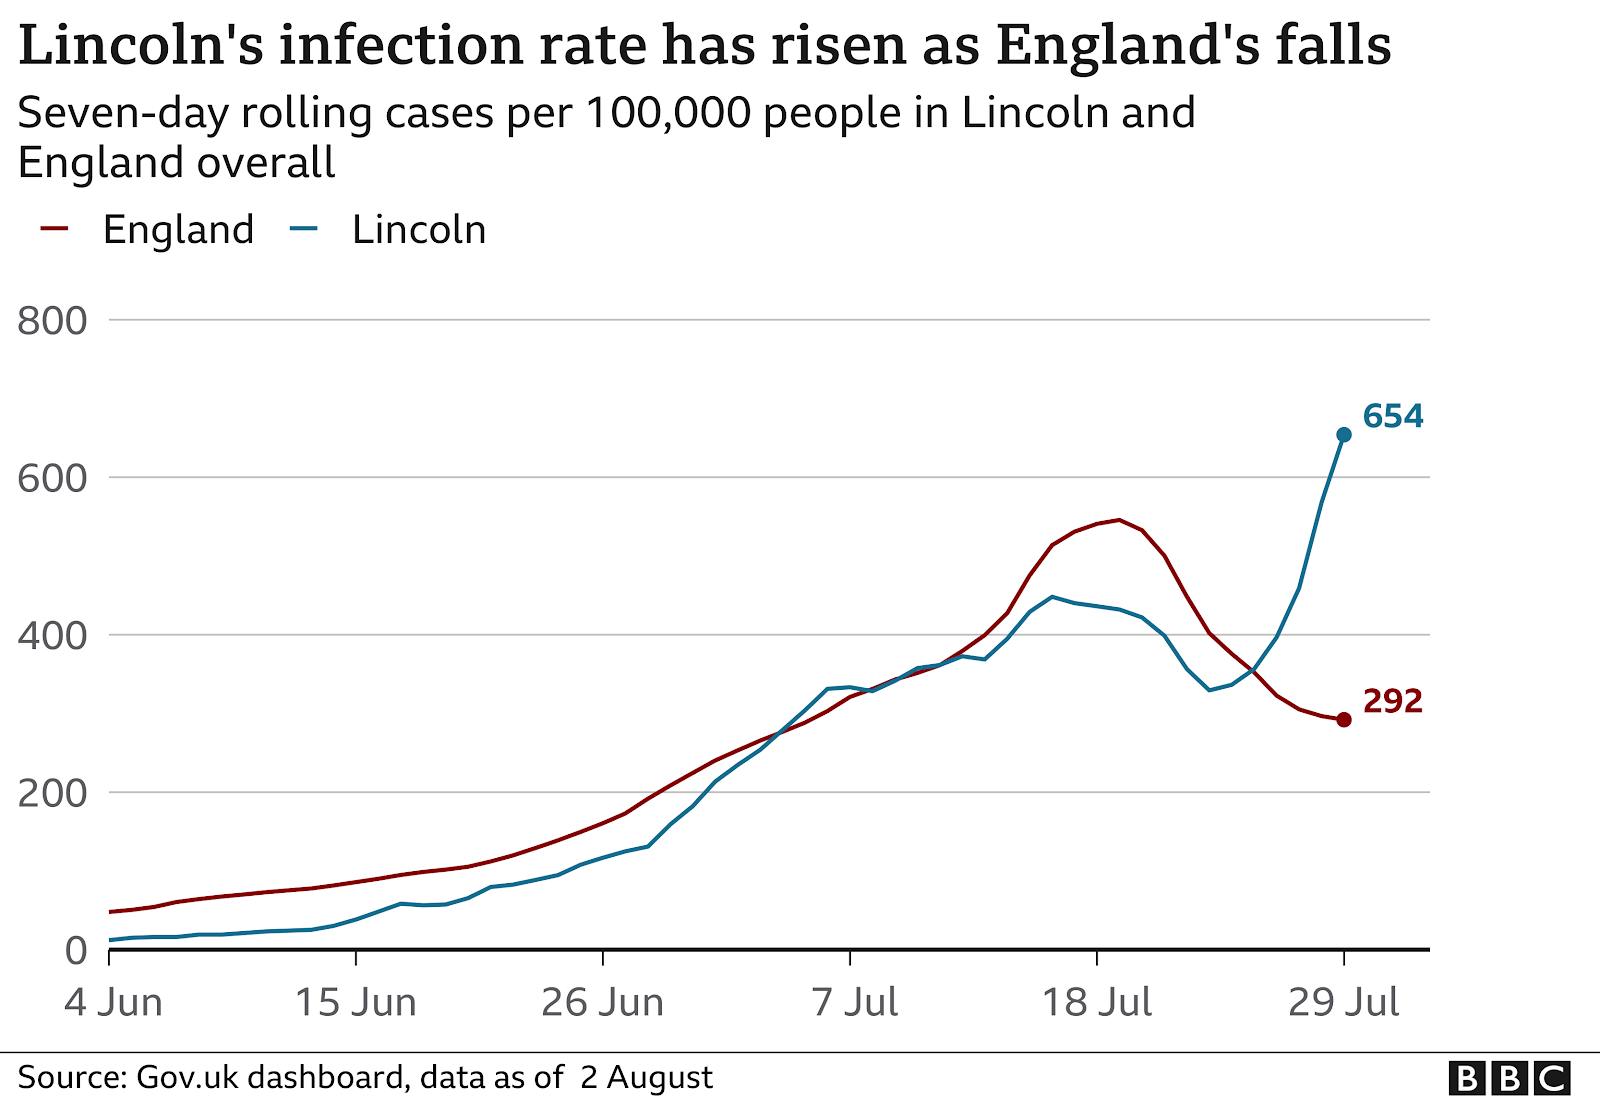 Graph comparing case rates in England to those in Lincoln